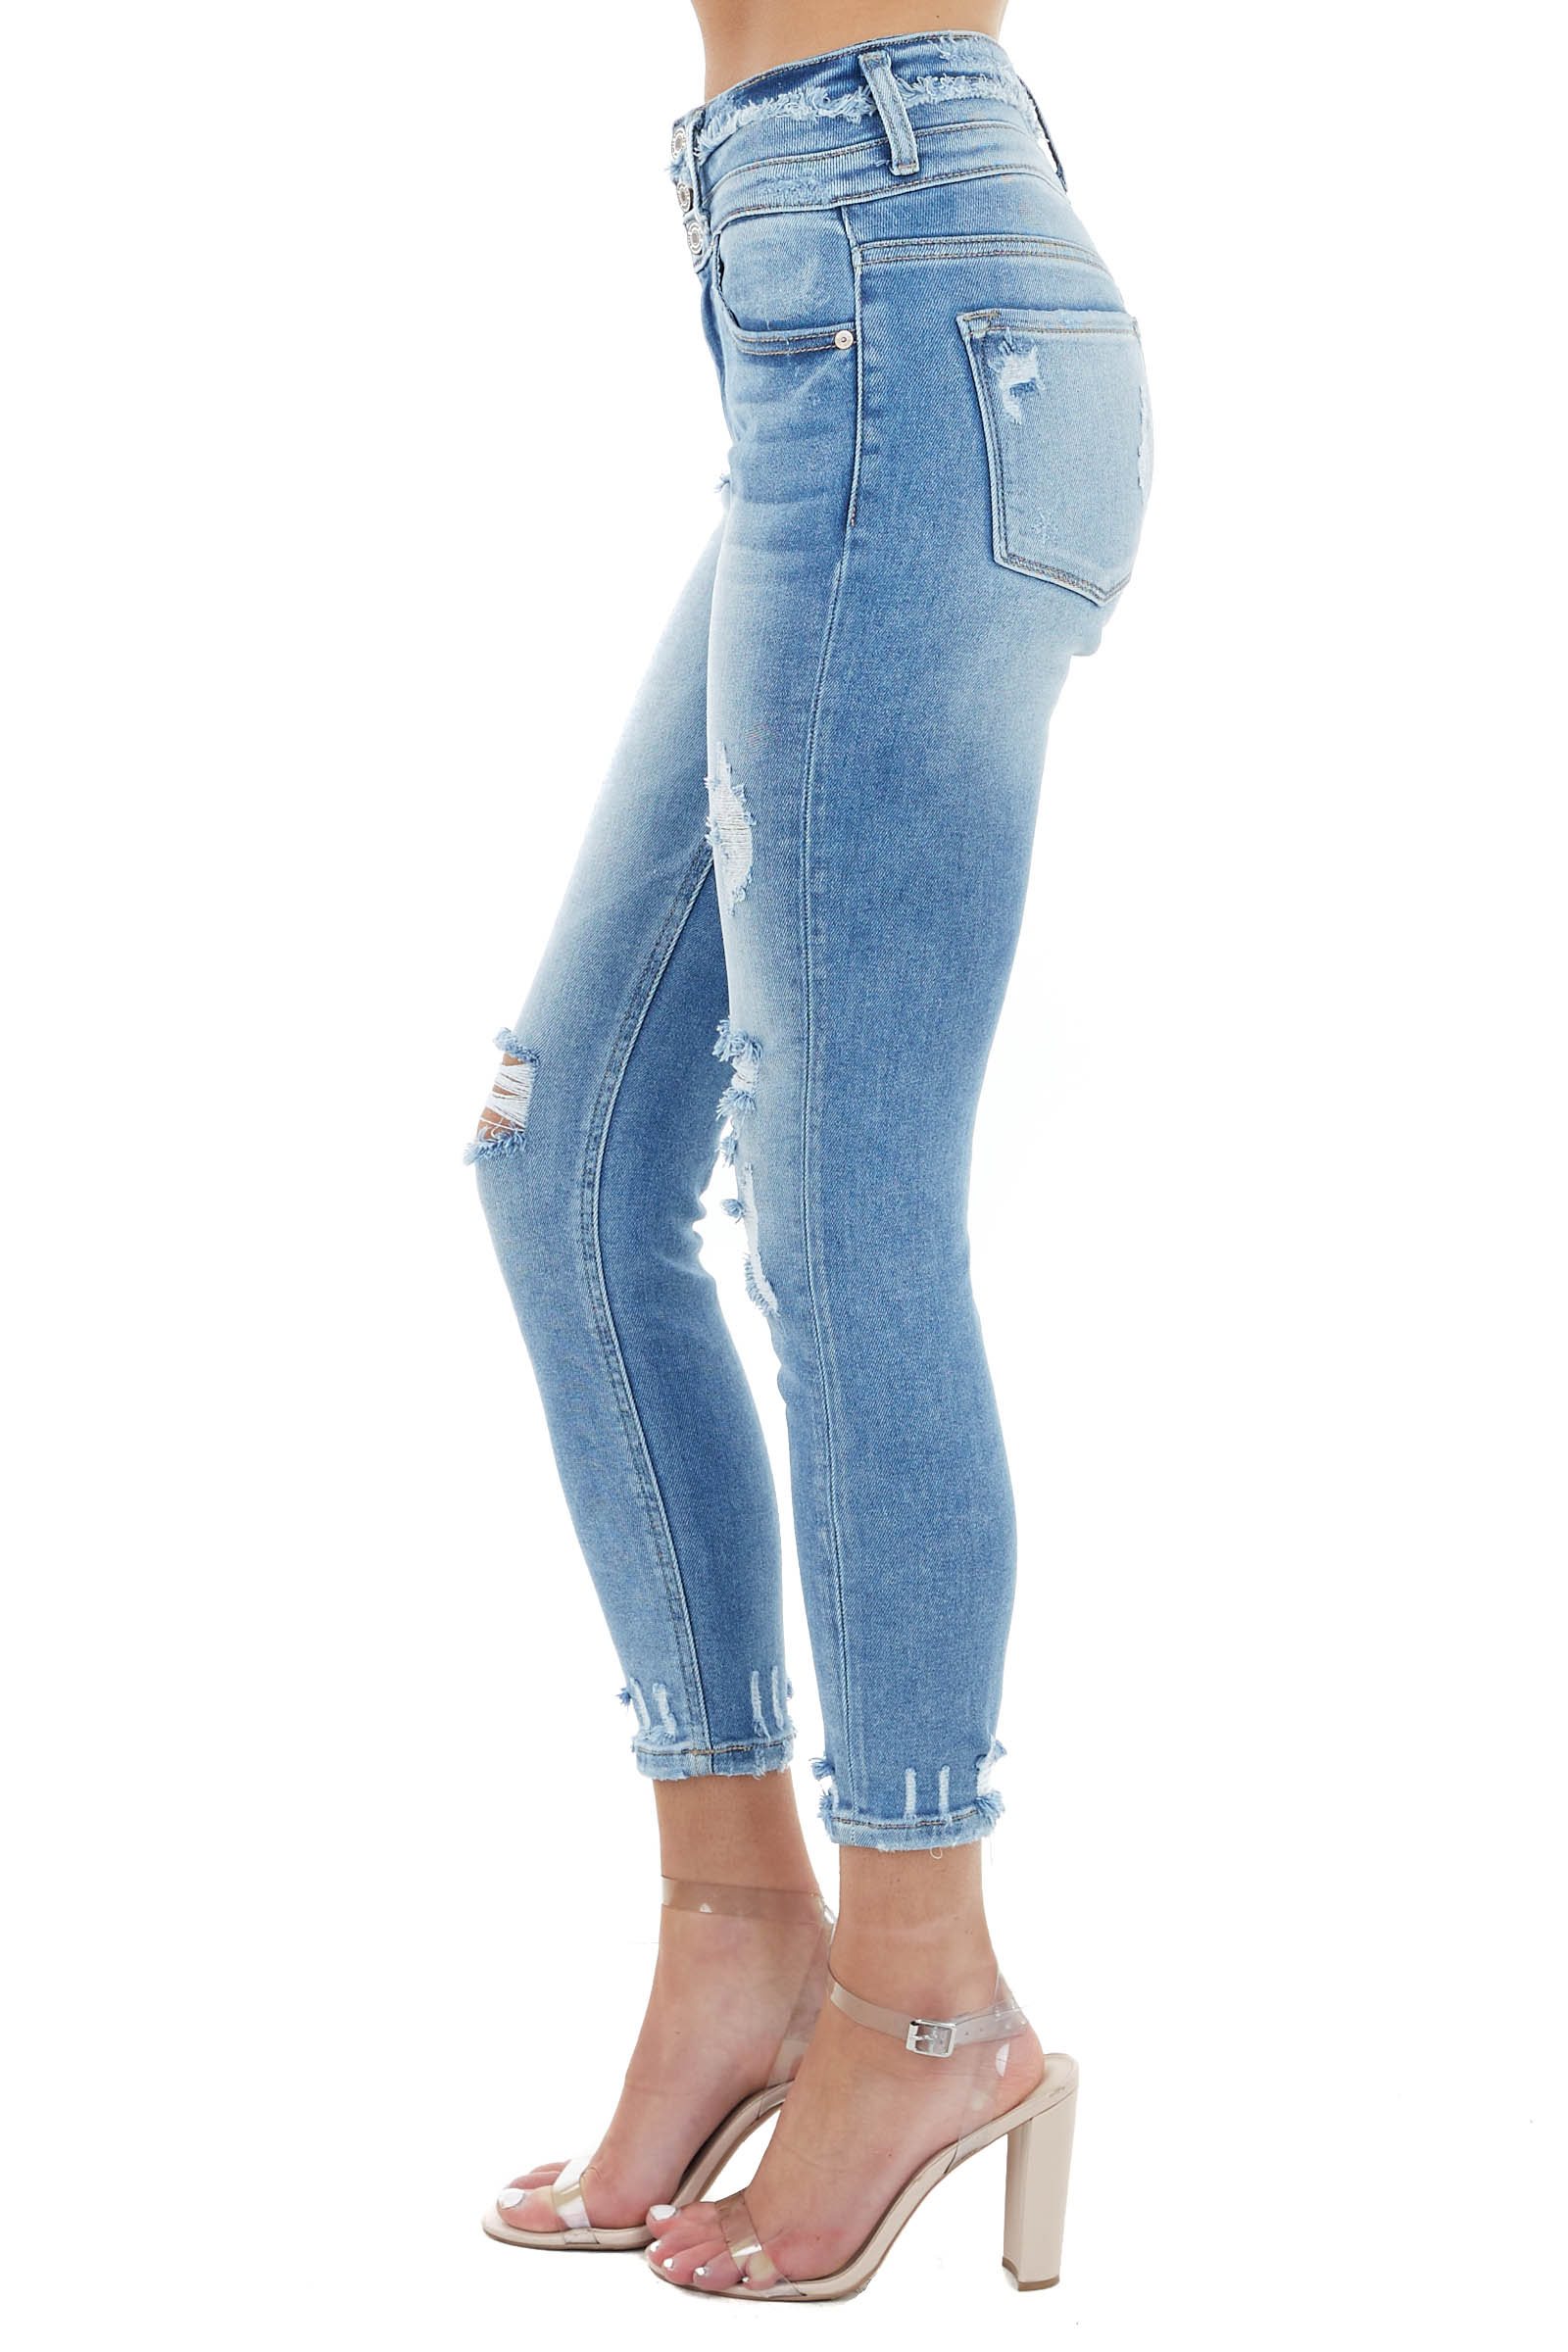 Light Wash Denim High Rise Skinny Jeans with Distressing